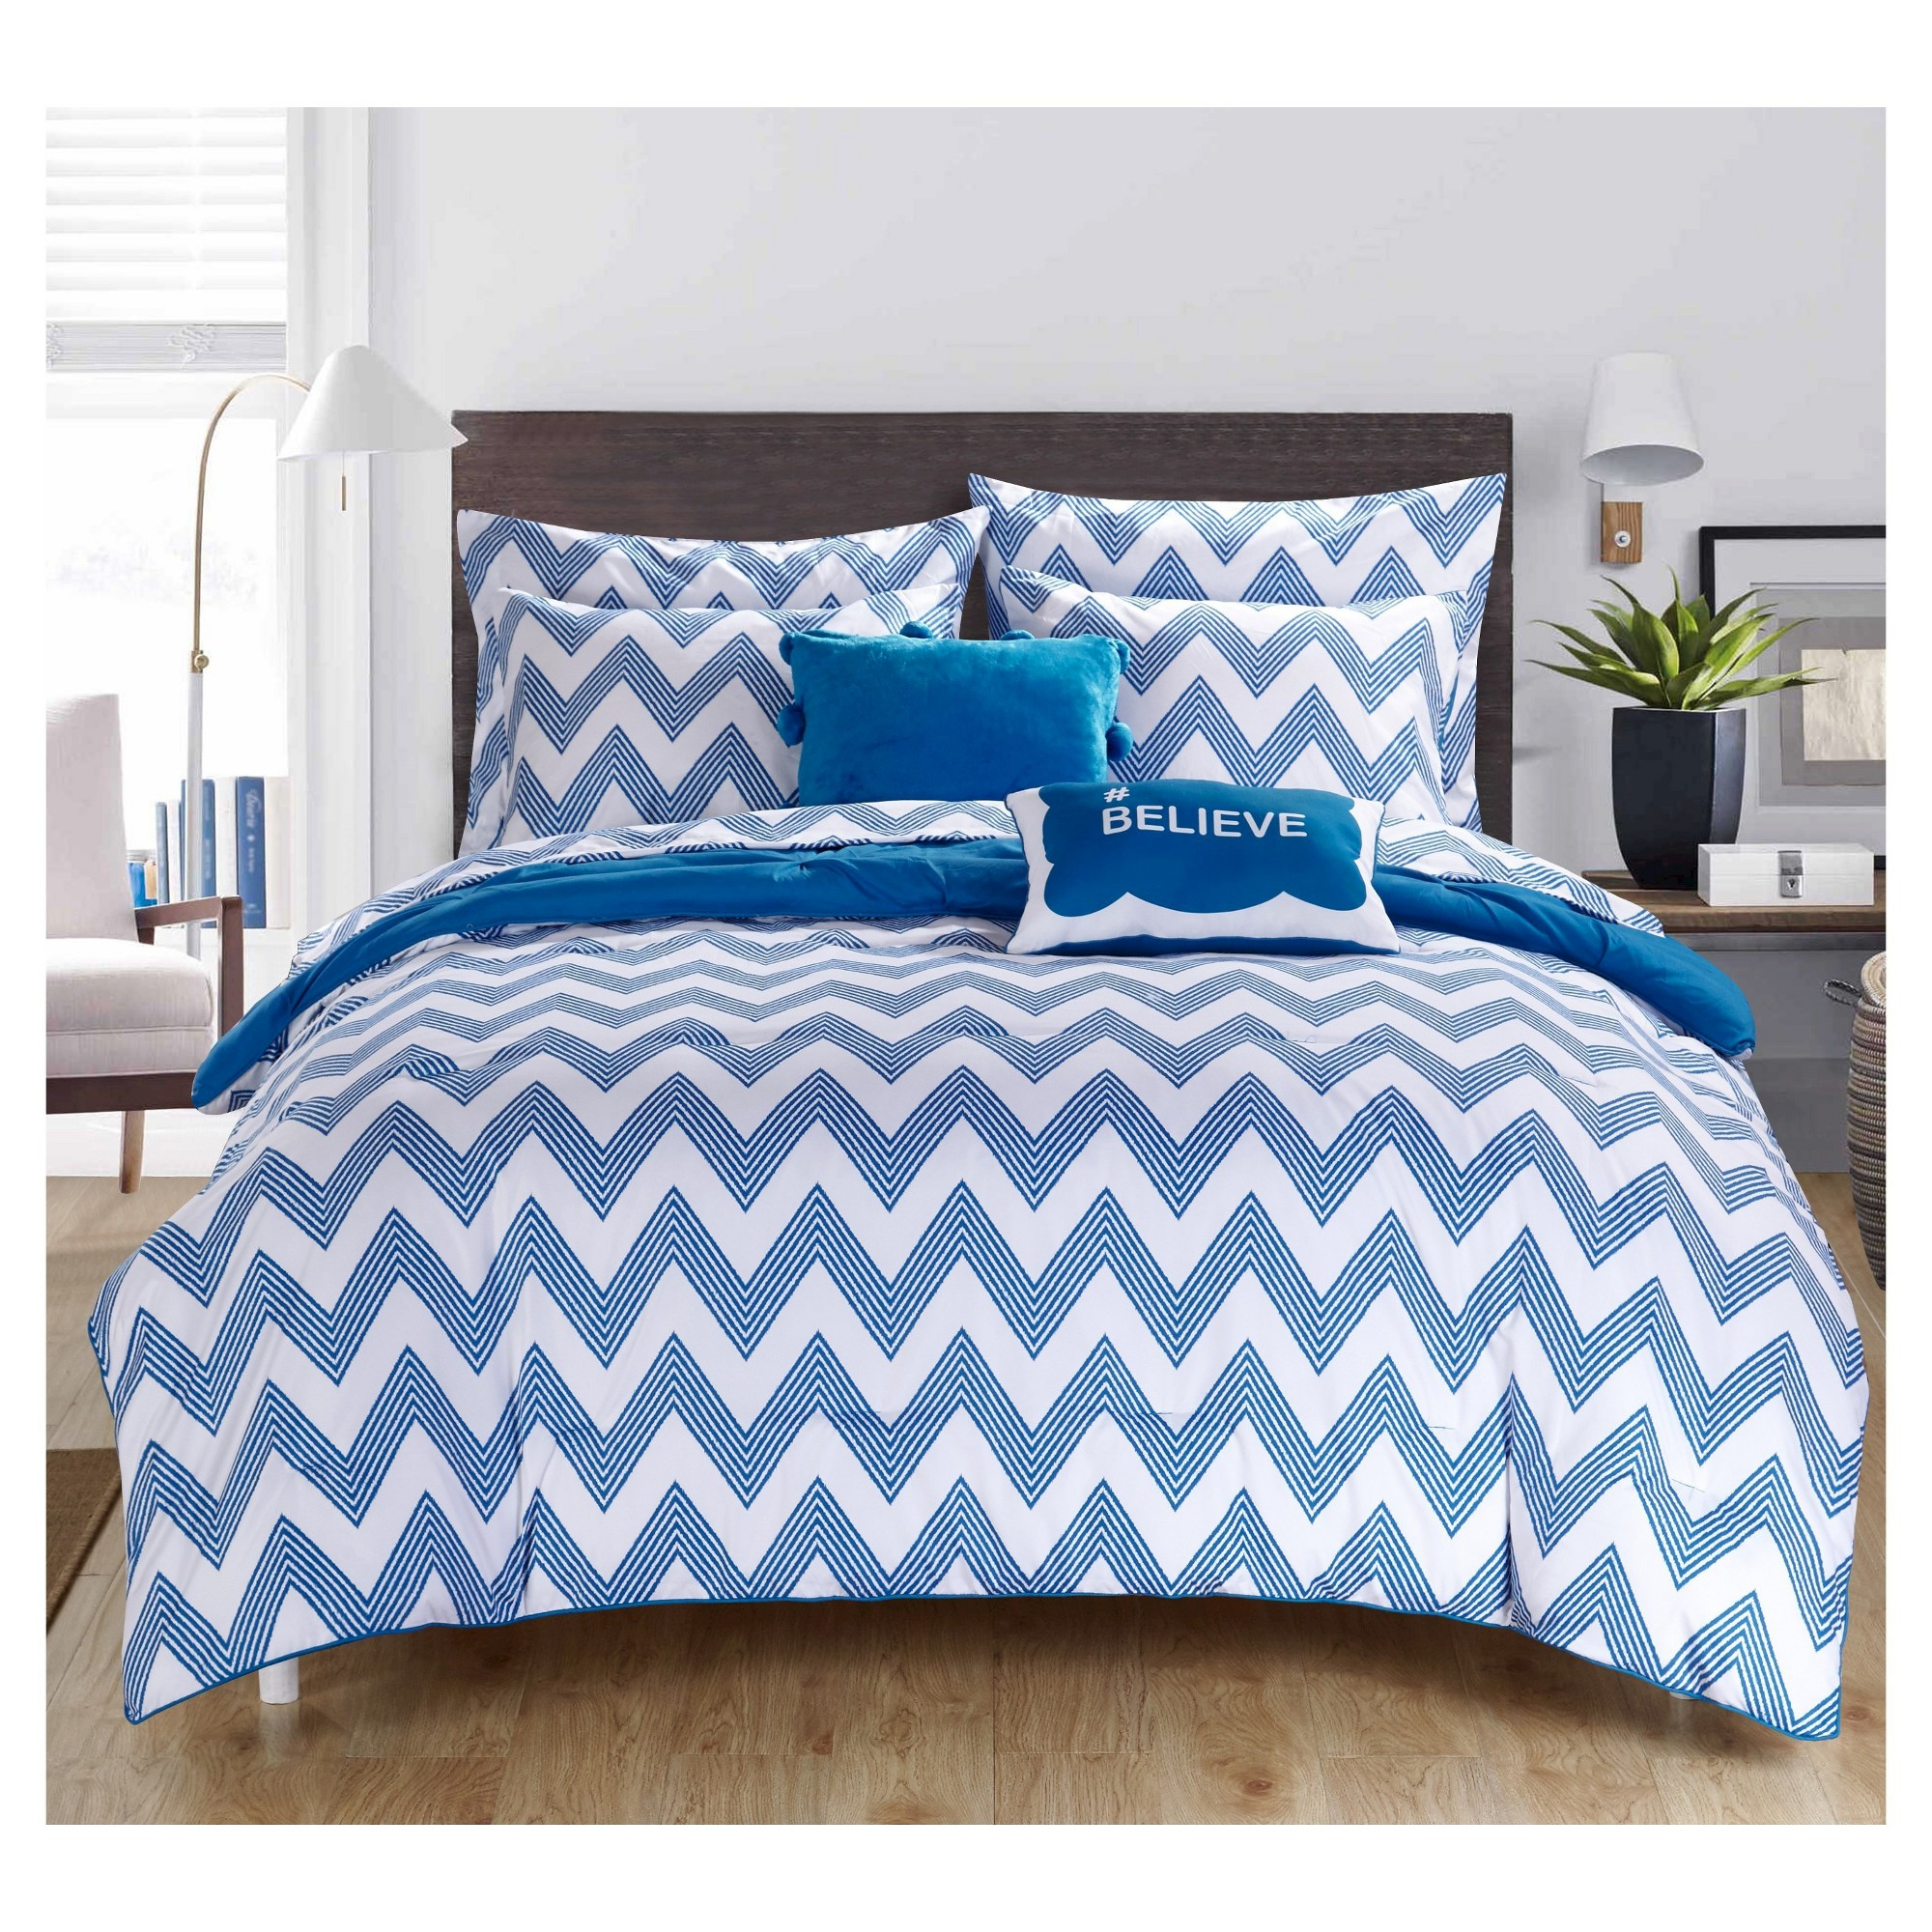 Foxville Pinch Pleated and Ruffled Chevron Print